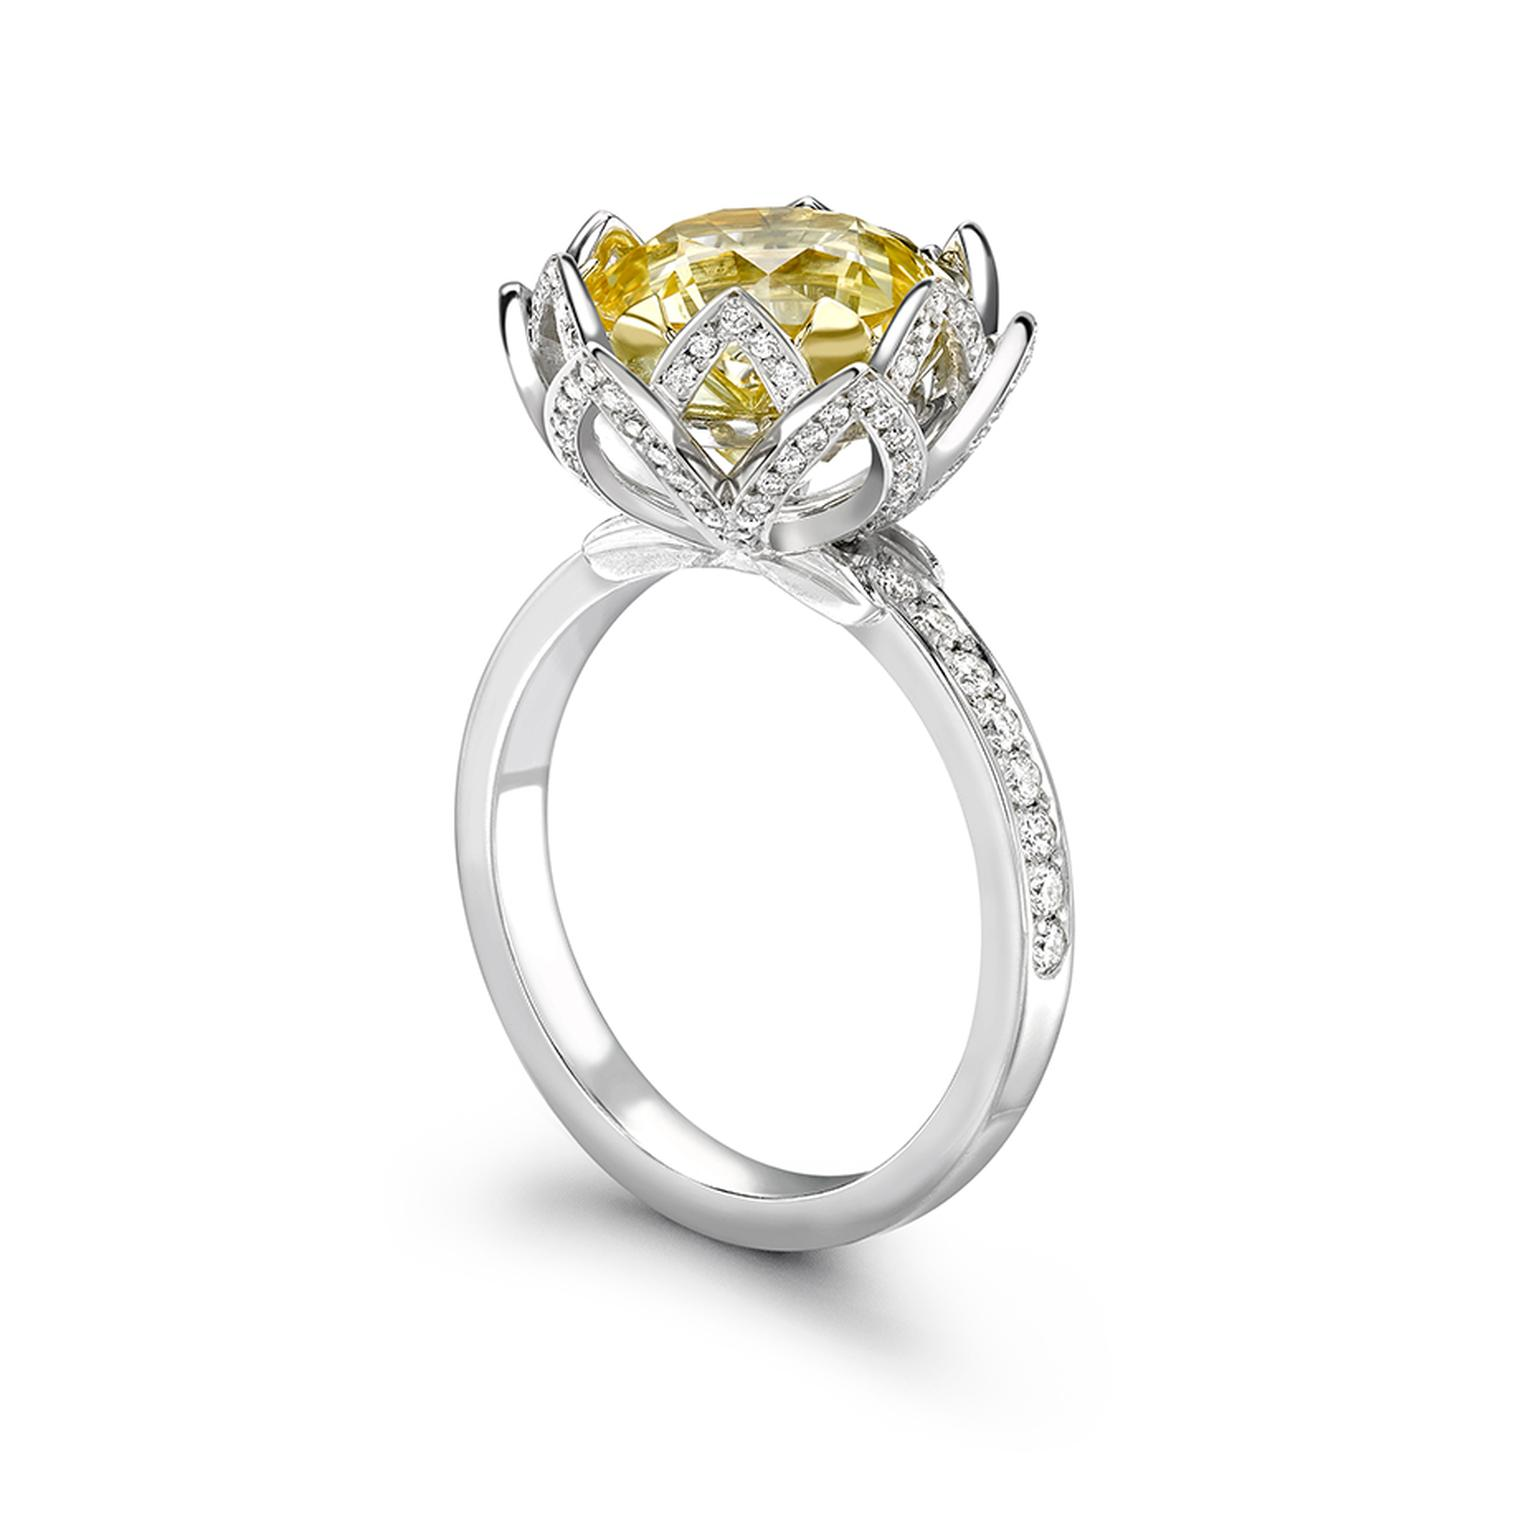 Theo Fennel Water Lily yellow sapphire engagement ring featuring a 5.88ct pale yellow sapphire enveloped in pavé diamond petals leading to the pavé band.